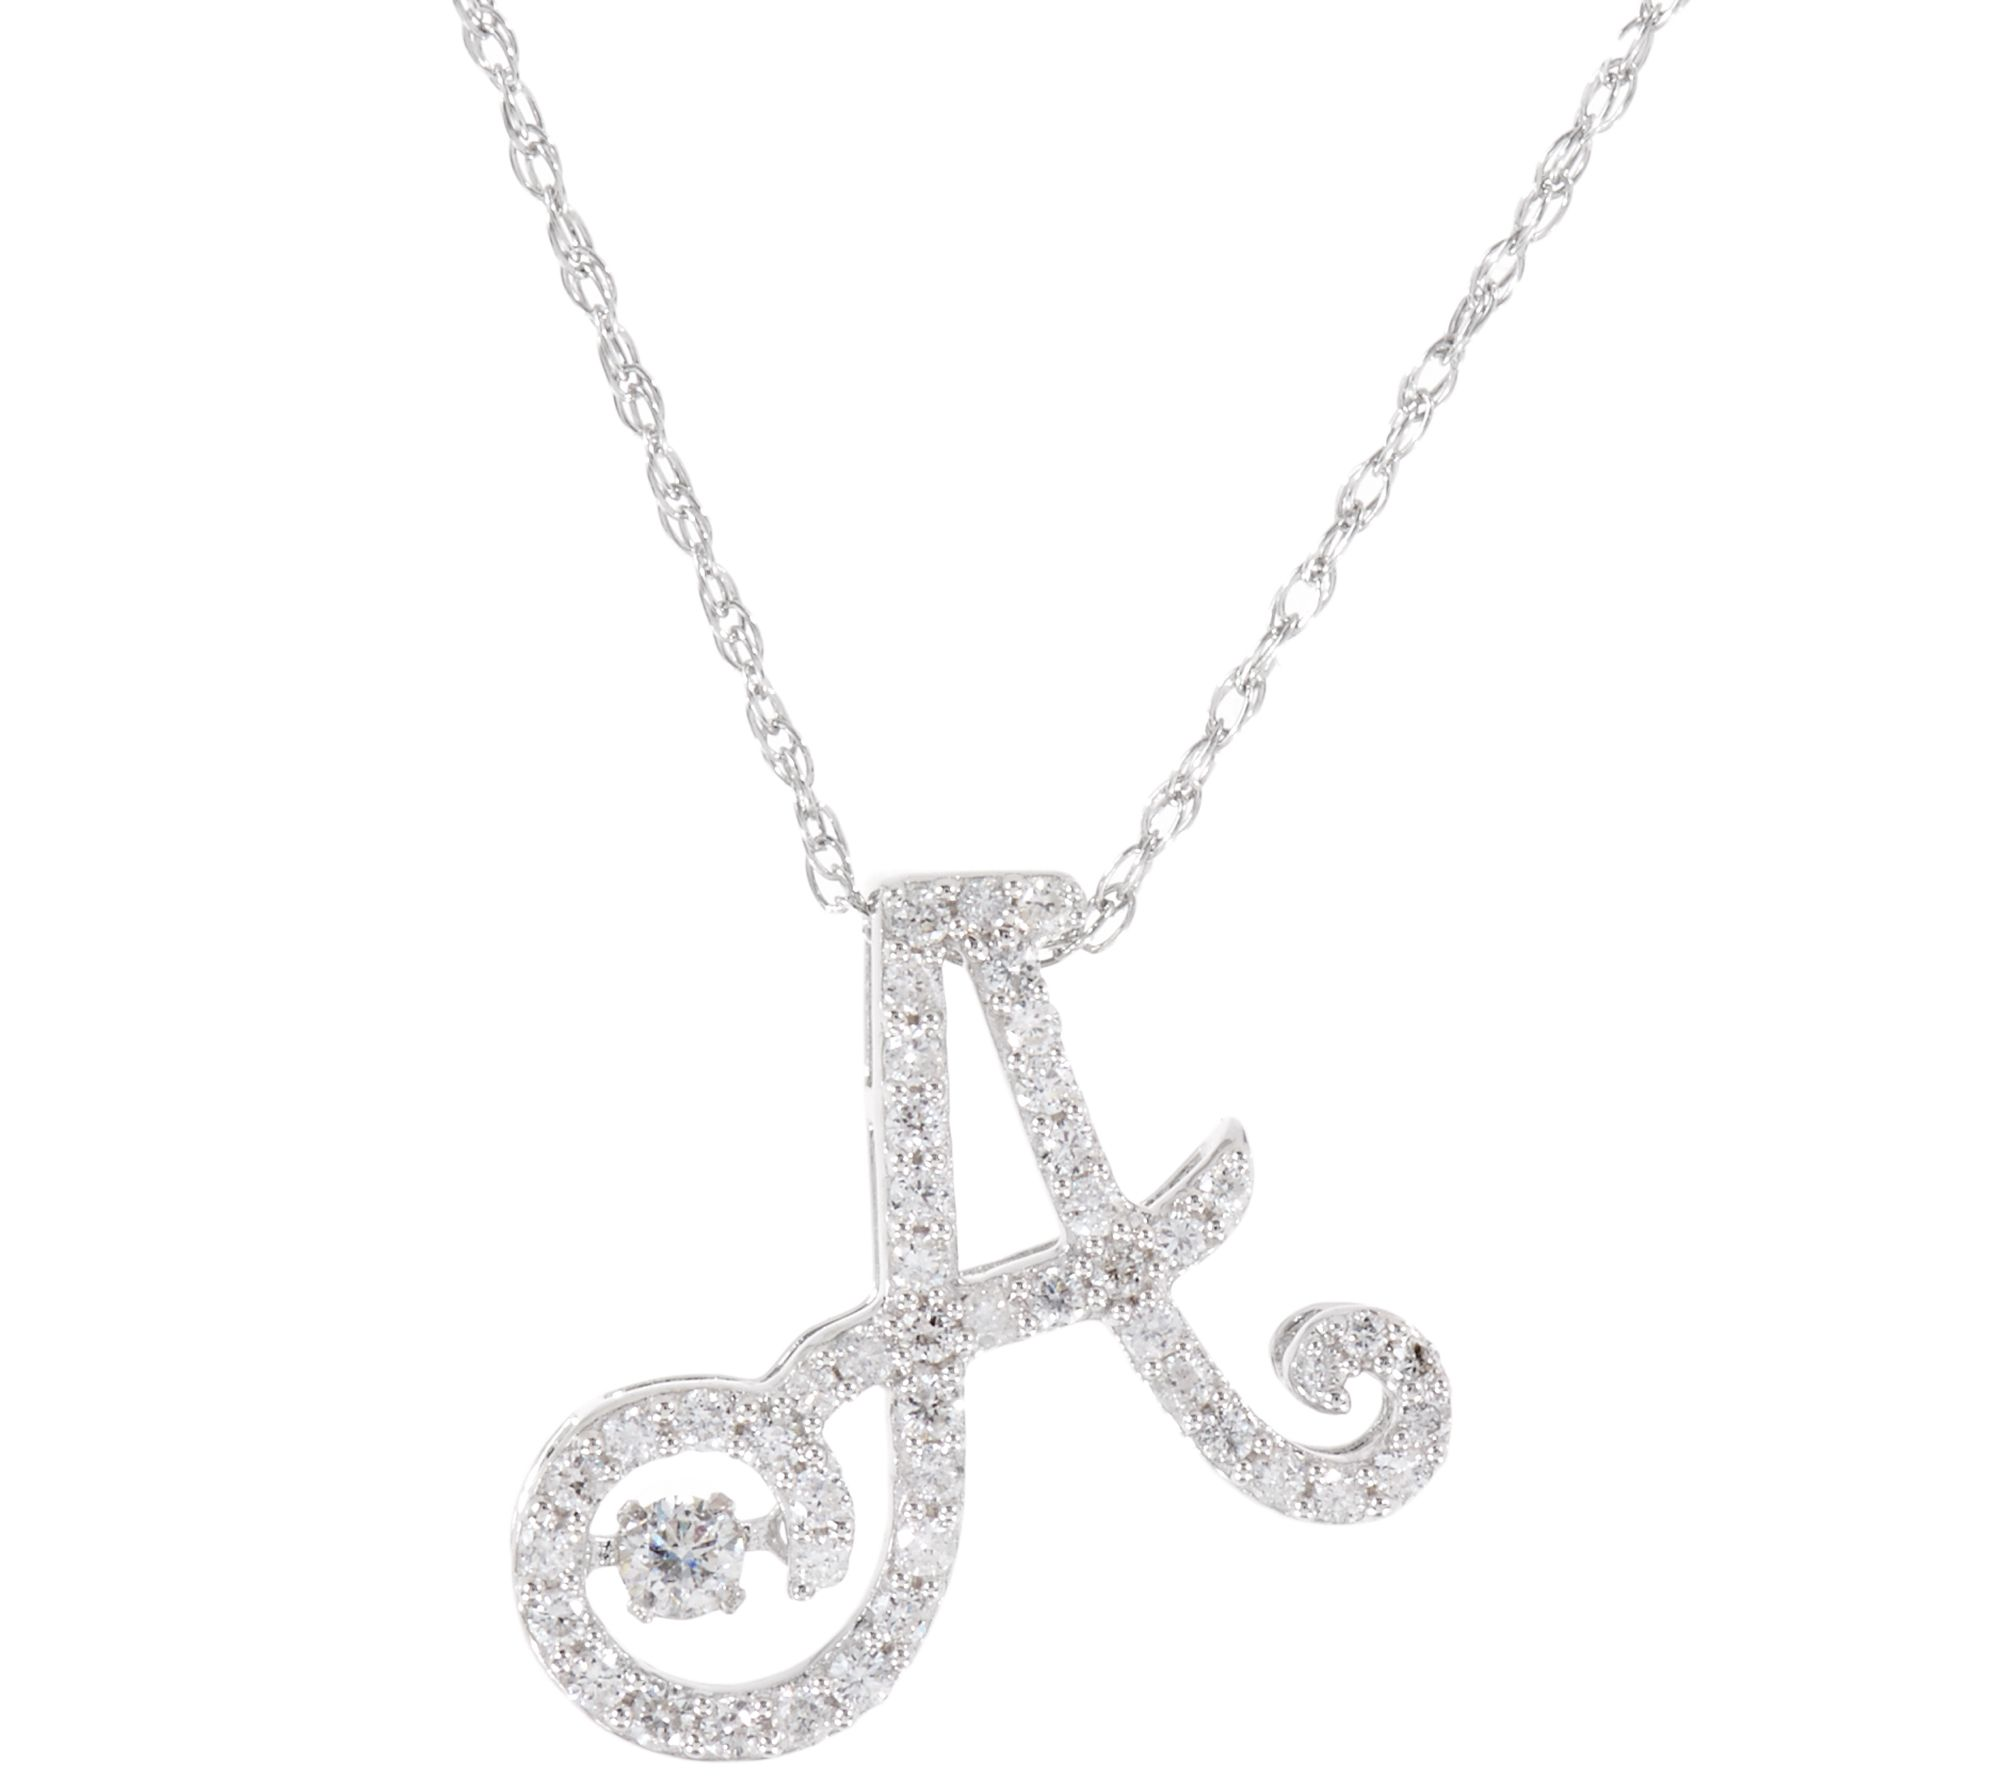 in chains with diamonds a d jewelry letter and necklace products pendant littleletters alex kt gold little monogram initial white woo